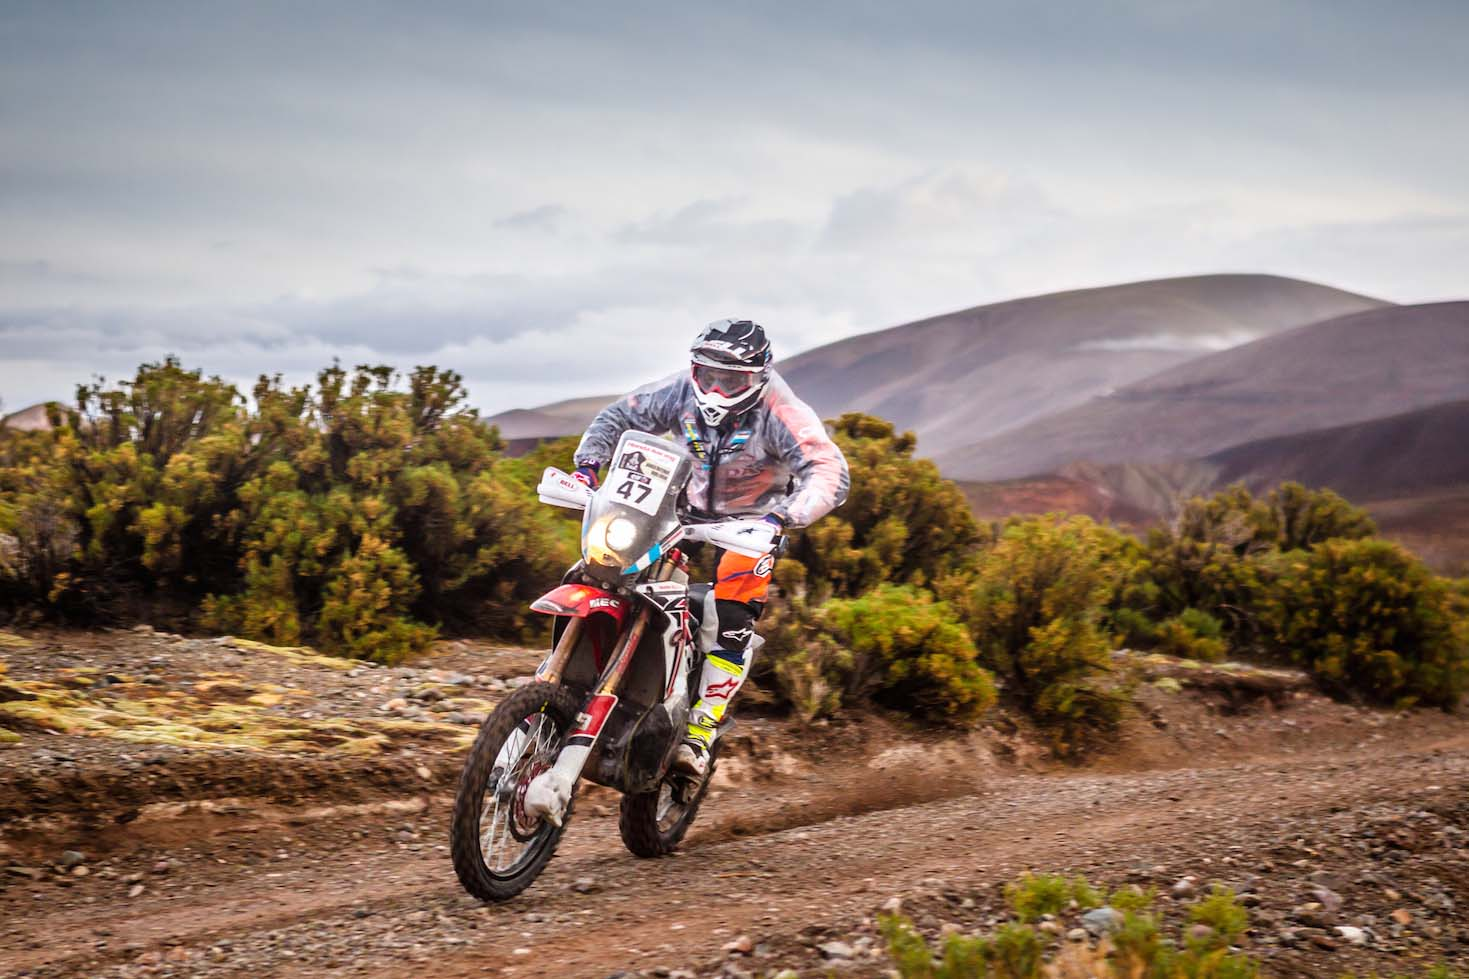 Ktm Dakar Rally Racers